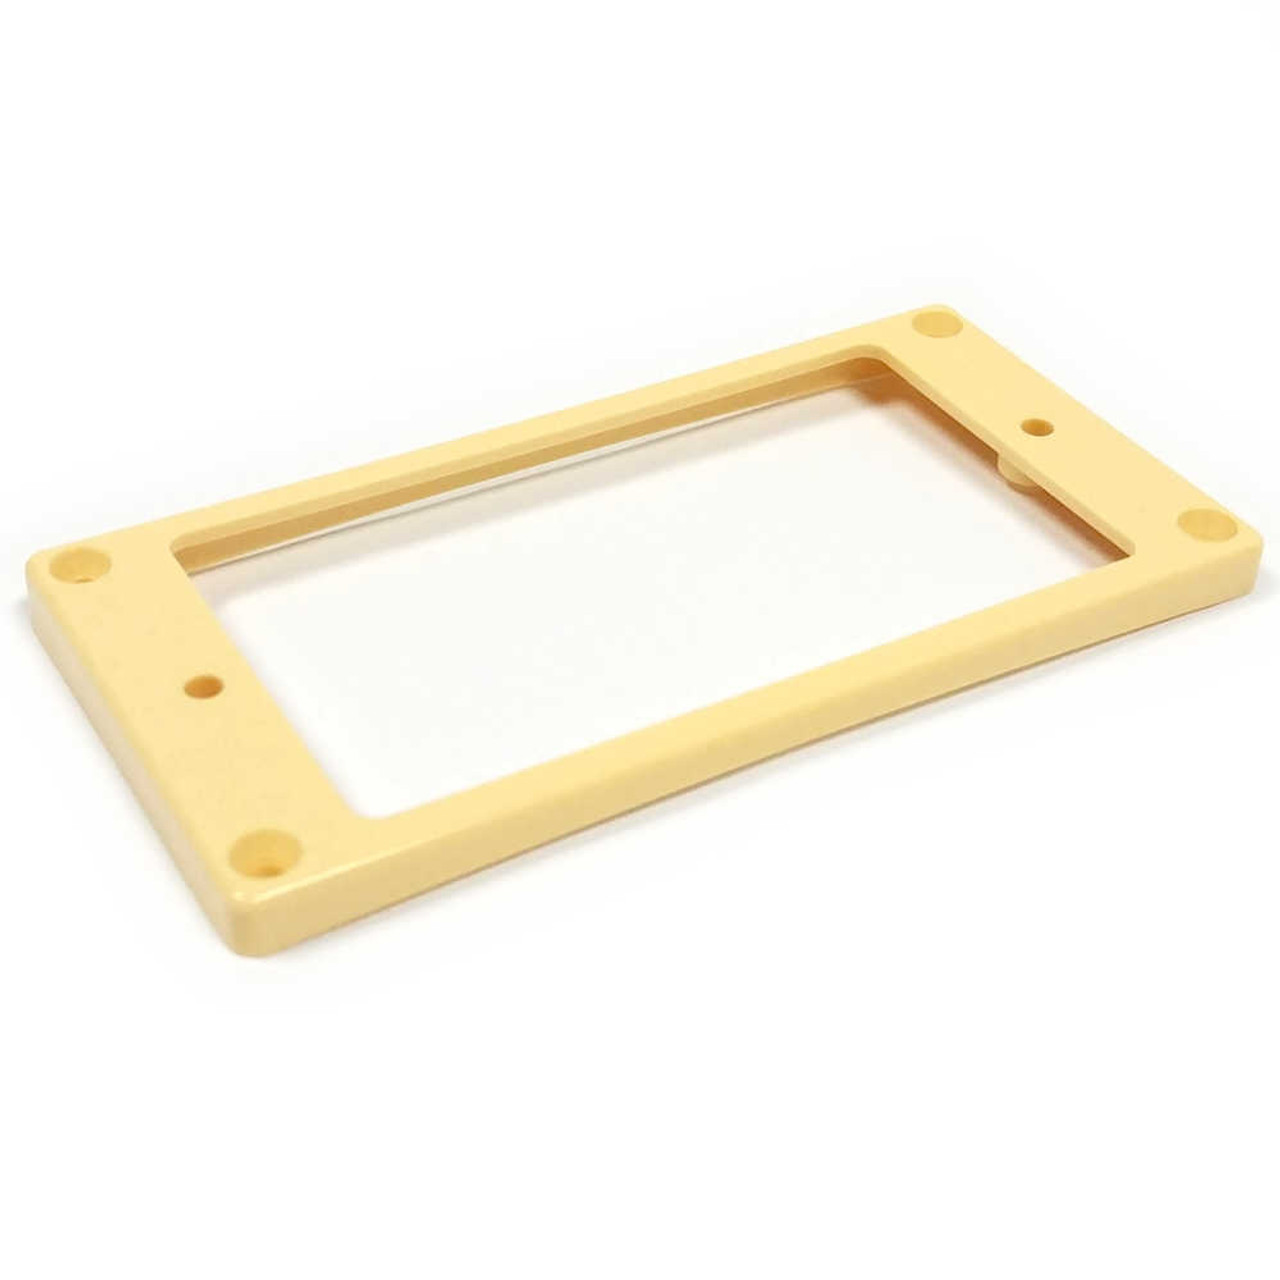 Humbucker Mounting Ring - Curved/Slanted Short - Cream